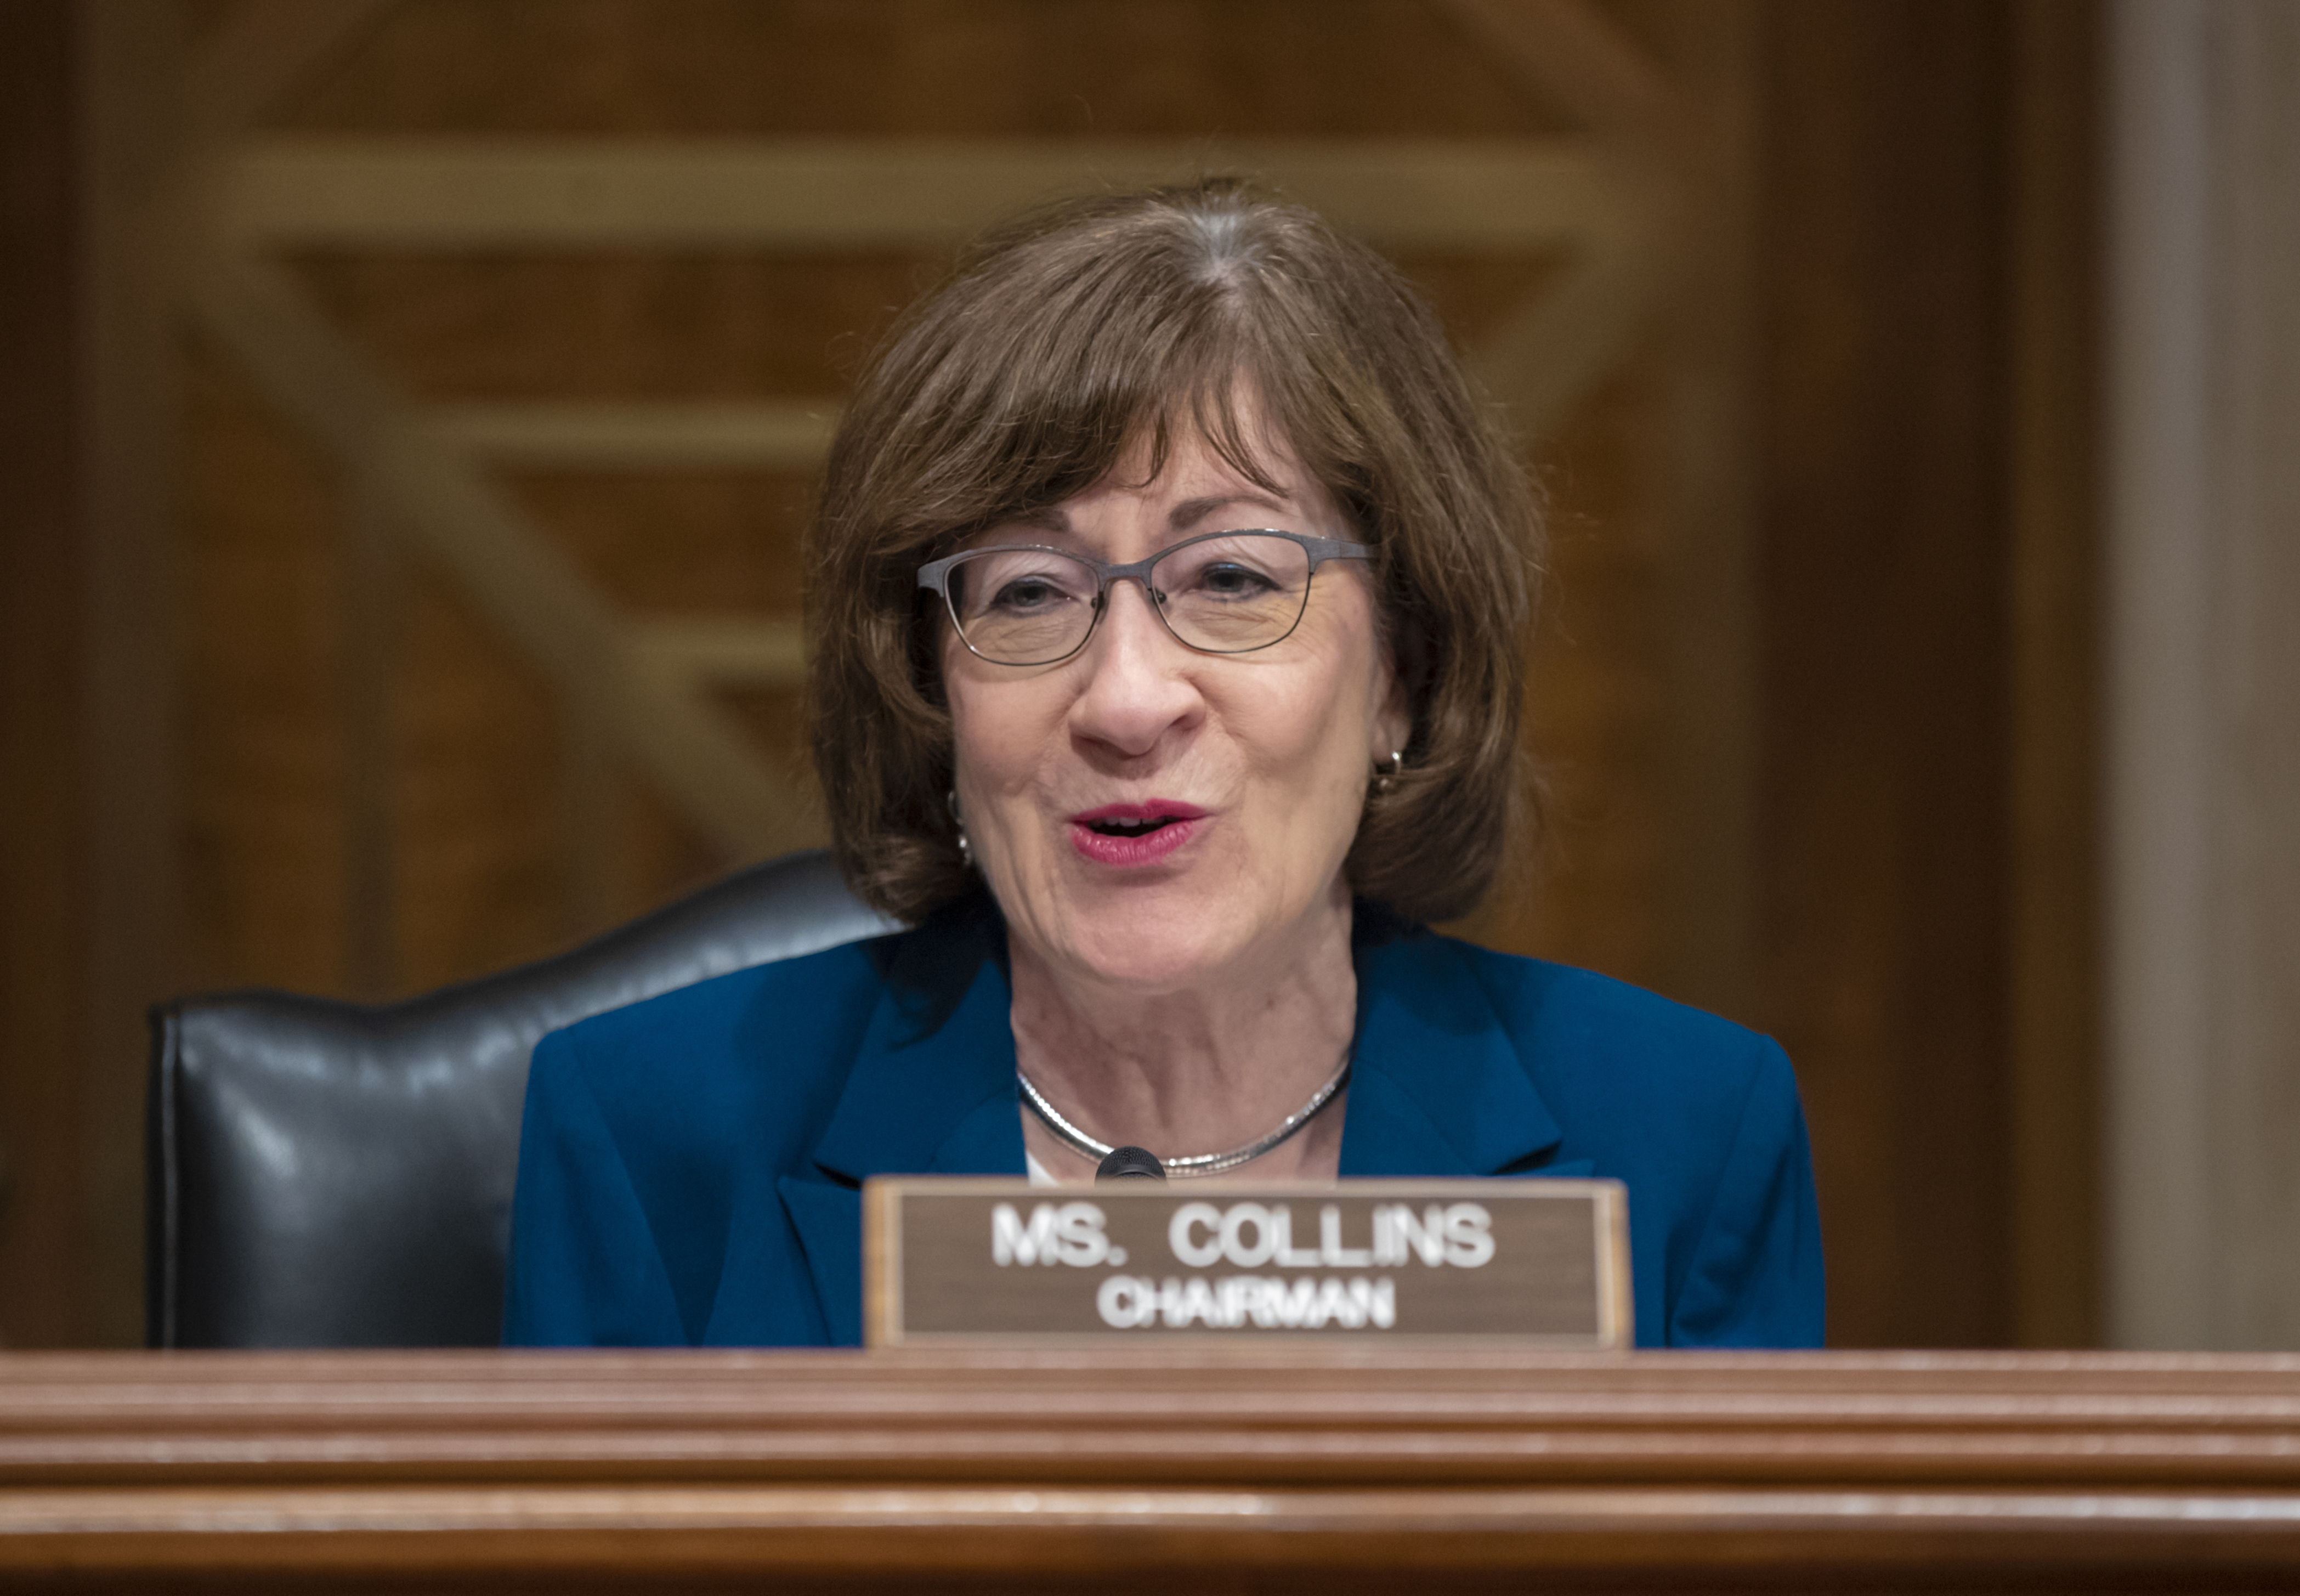 Watchdog group requests IRS investigation into anti-Susan Collins group's tax-exempt status